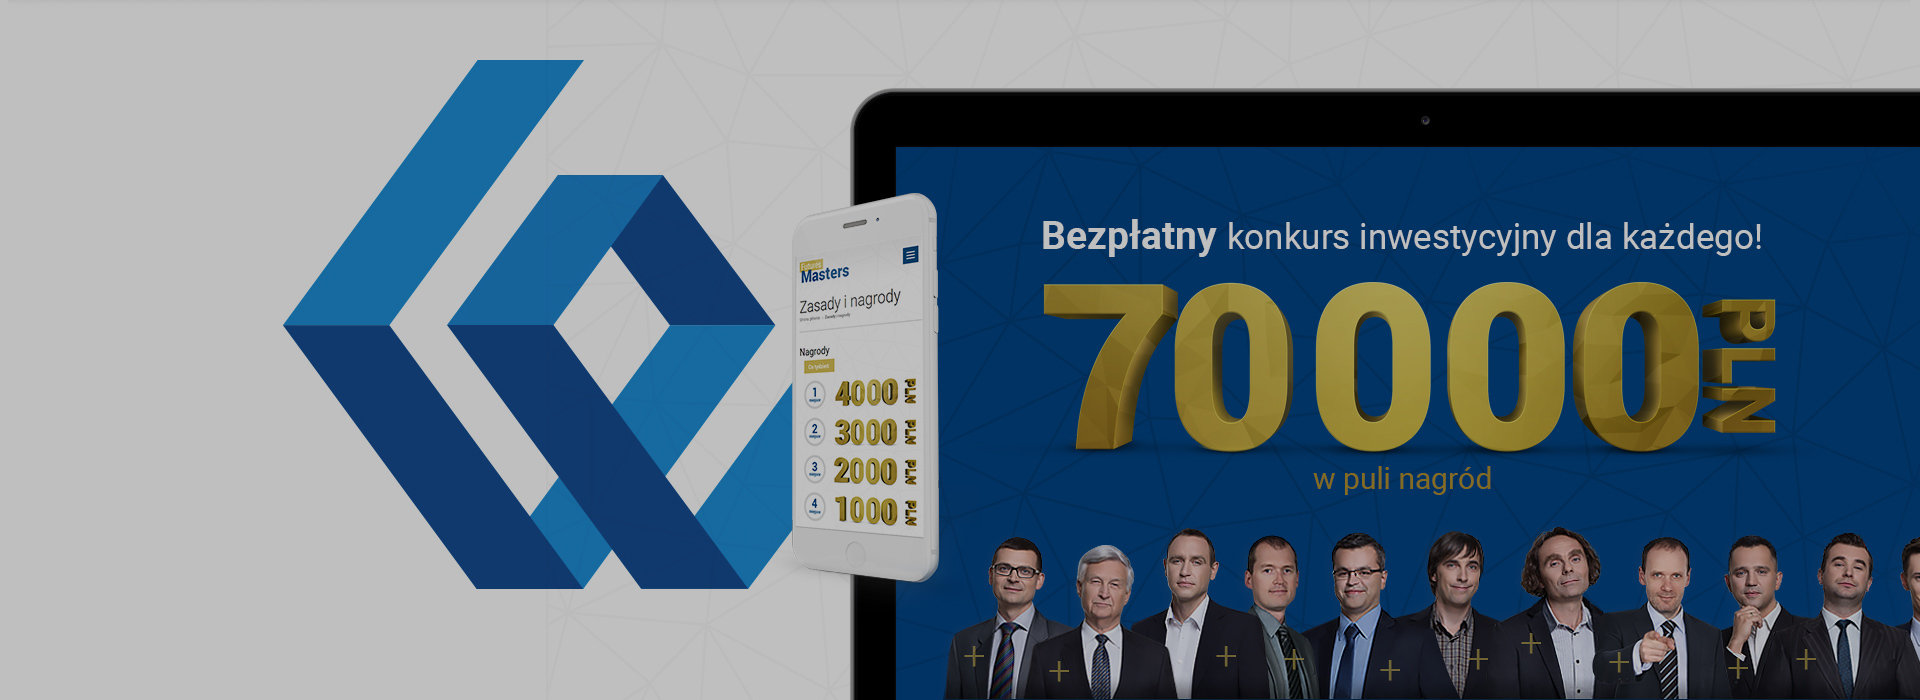 Warsaw Stock Exchange - nation wide campaing and online contest for investors&nbsp;<br>